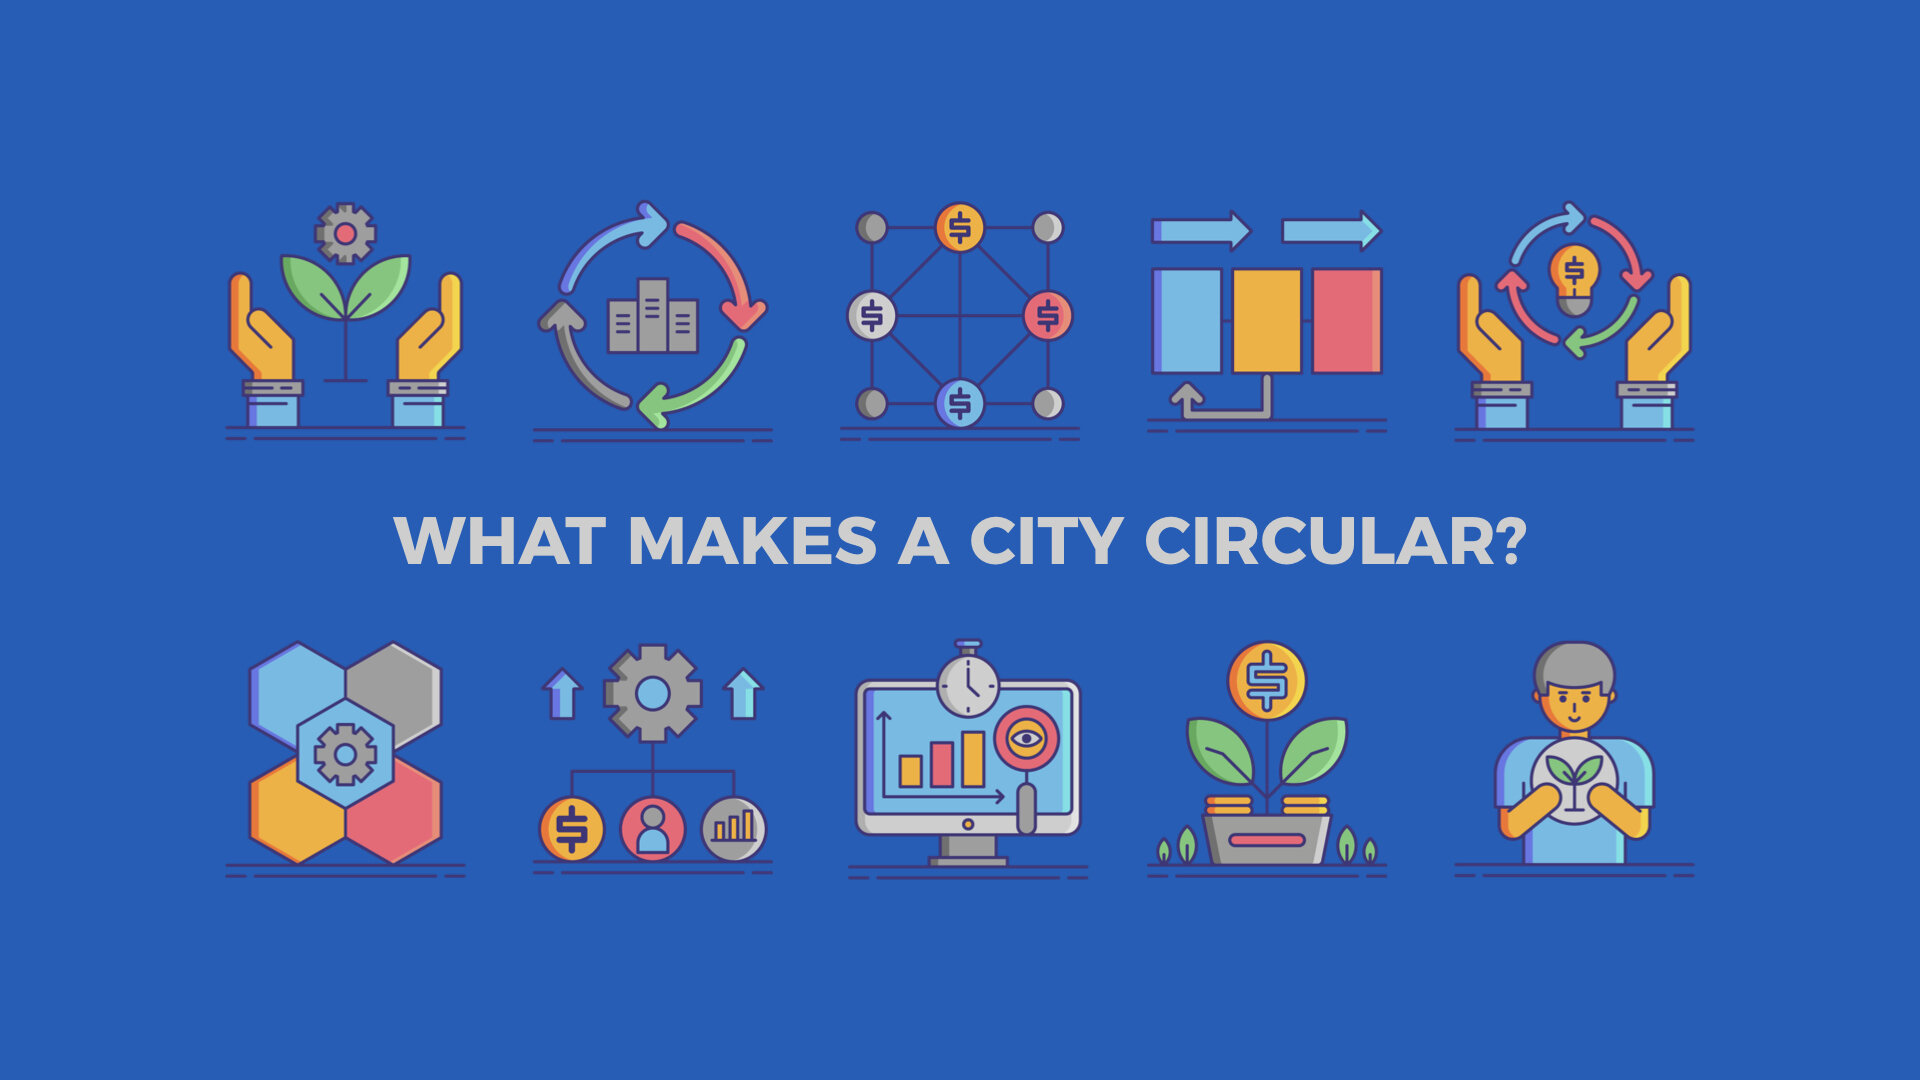 What makes a city circular?